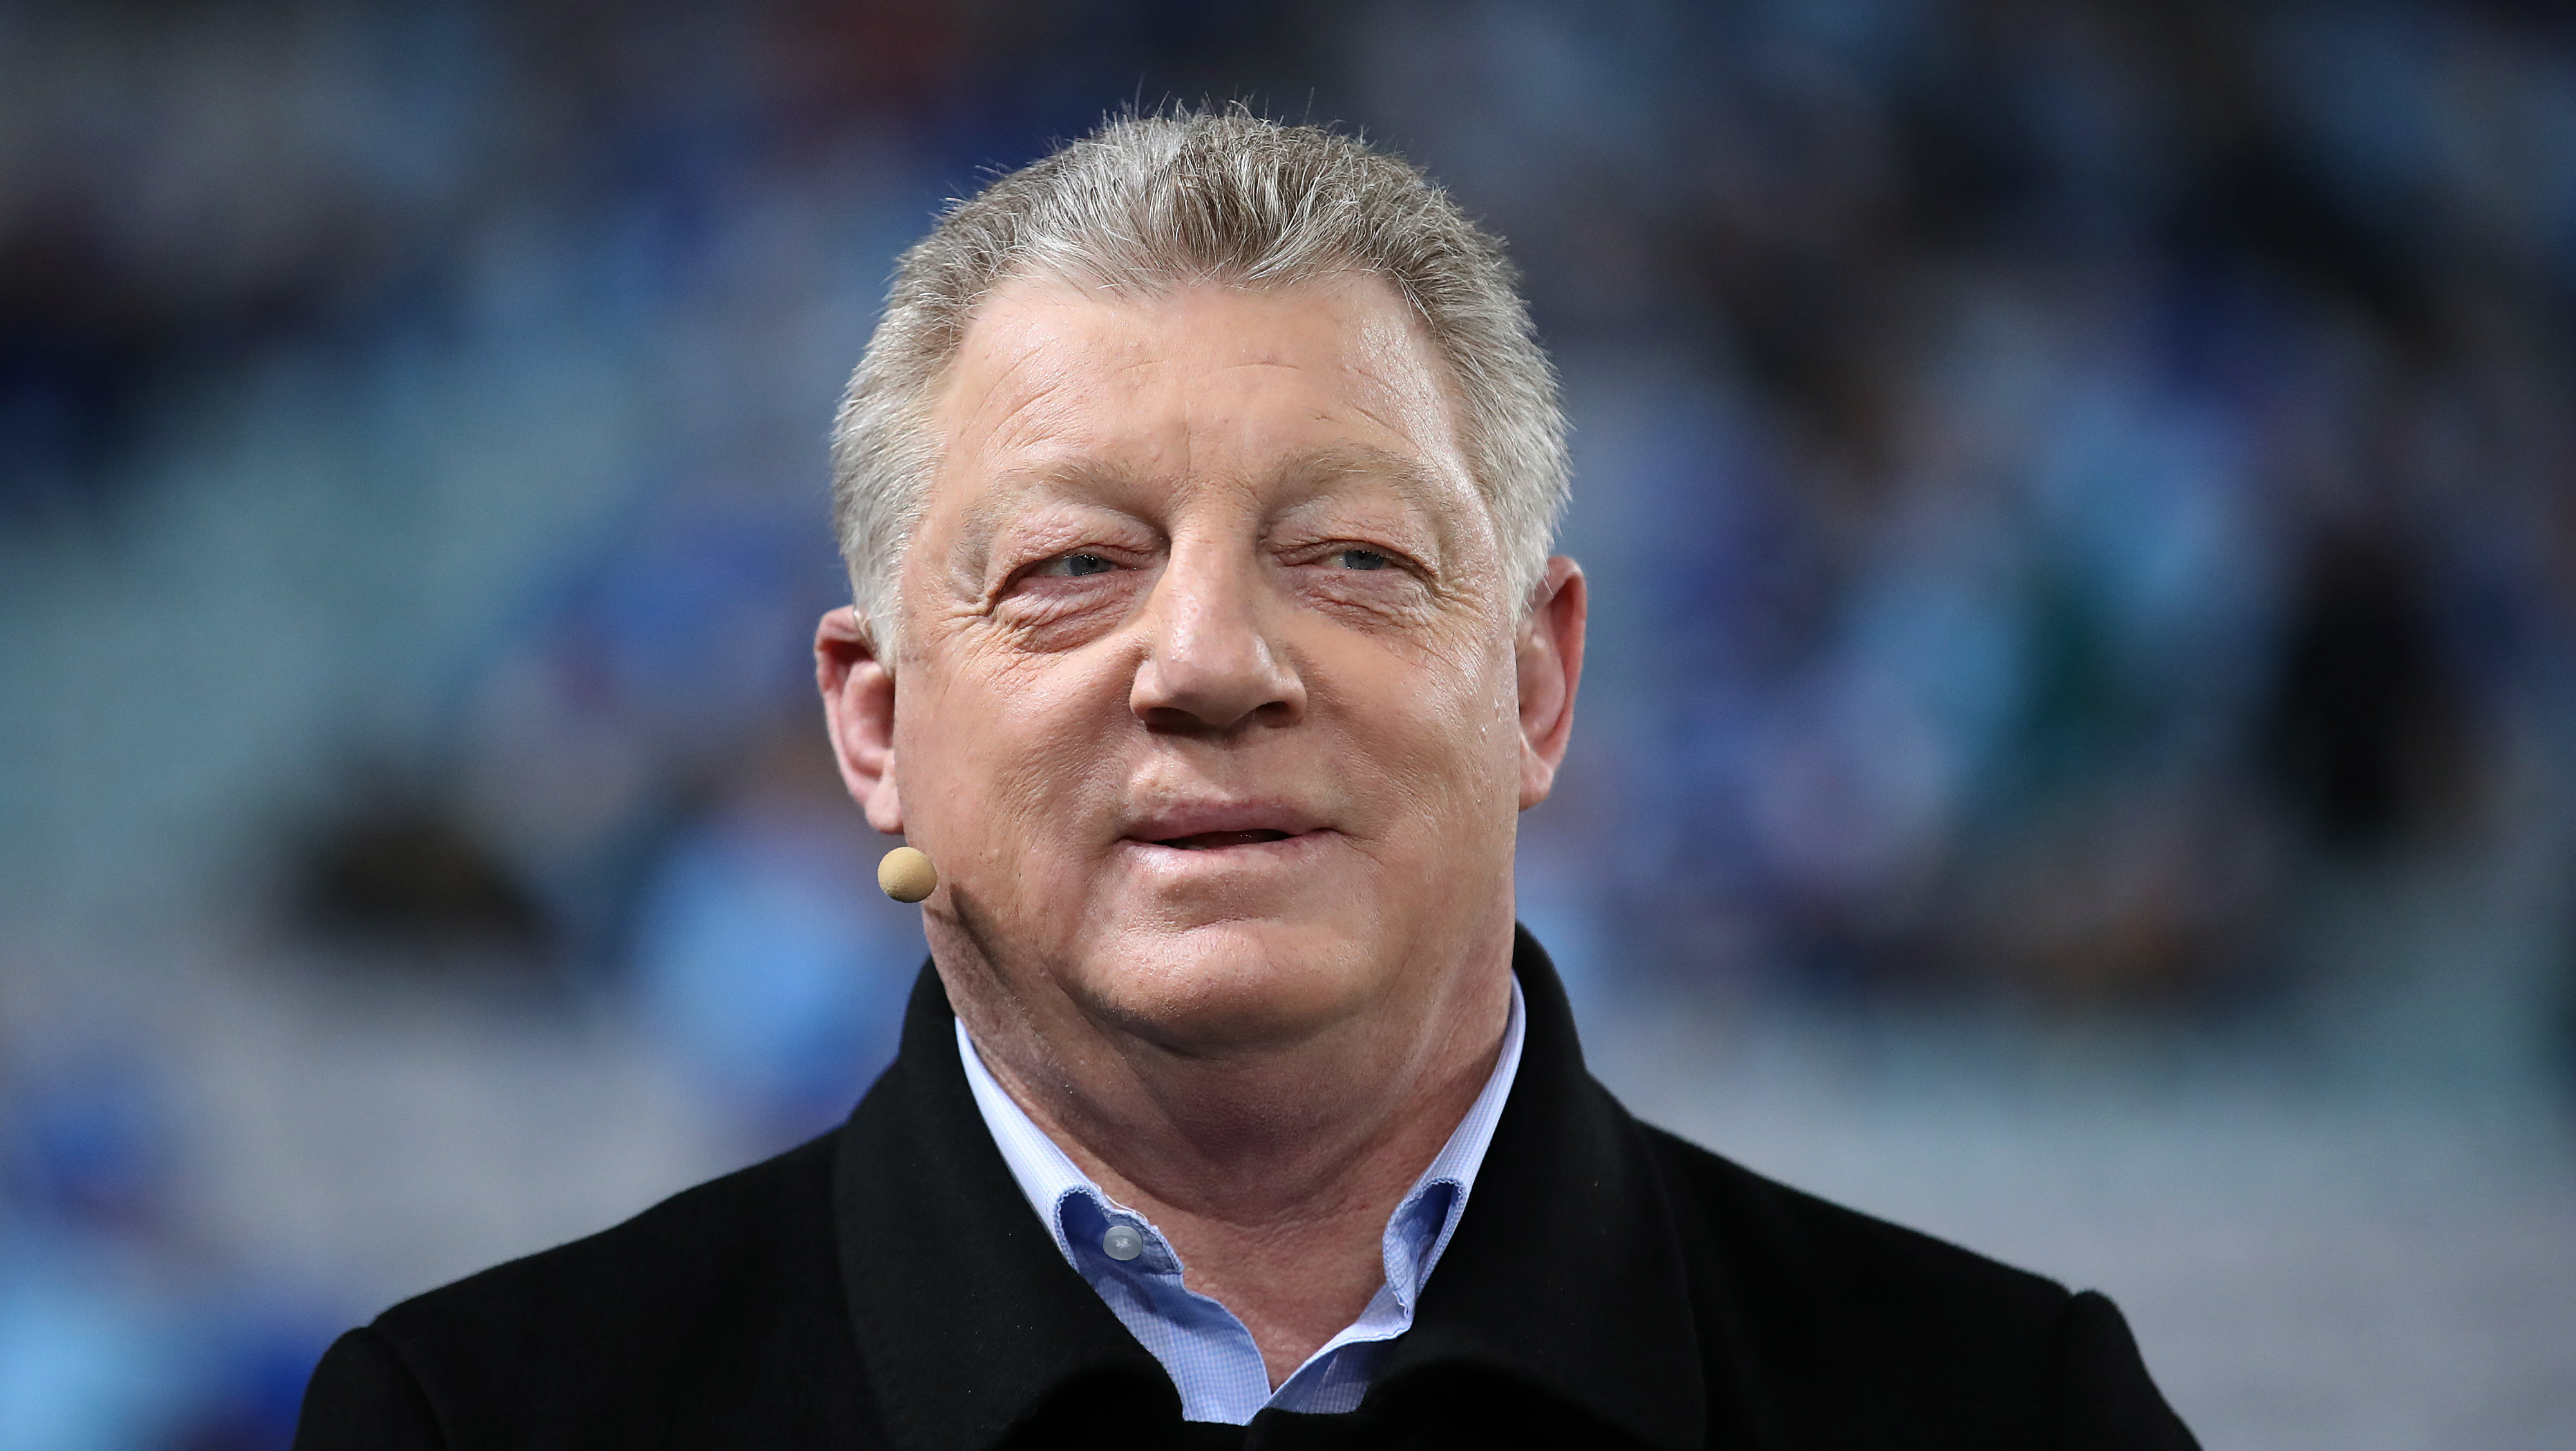 'The answer is a pineapple': Phil Gould unsure over NRL expansion plans to Central Coast, Perth or Brisbane